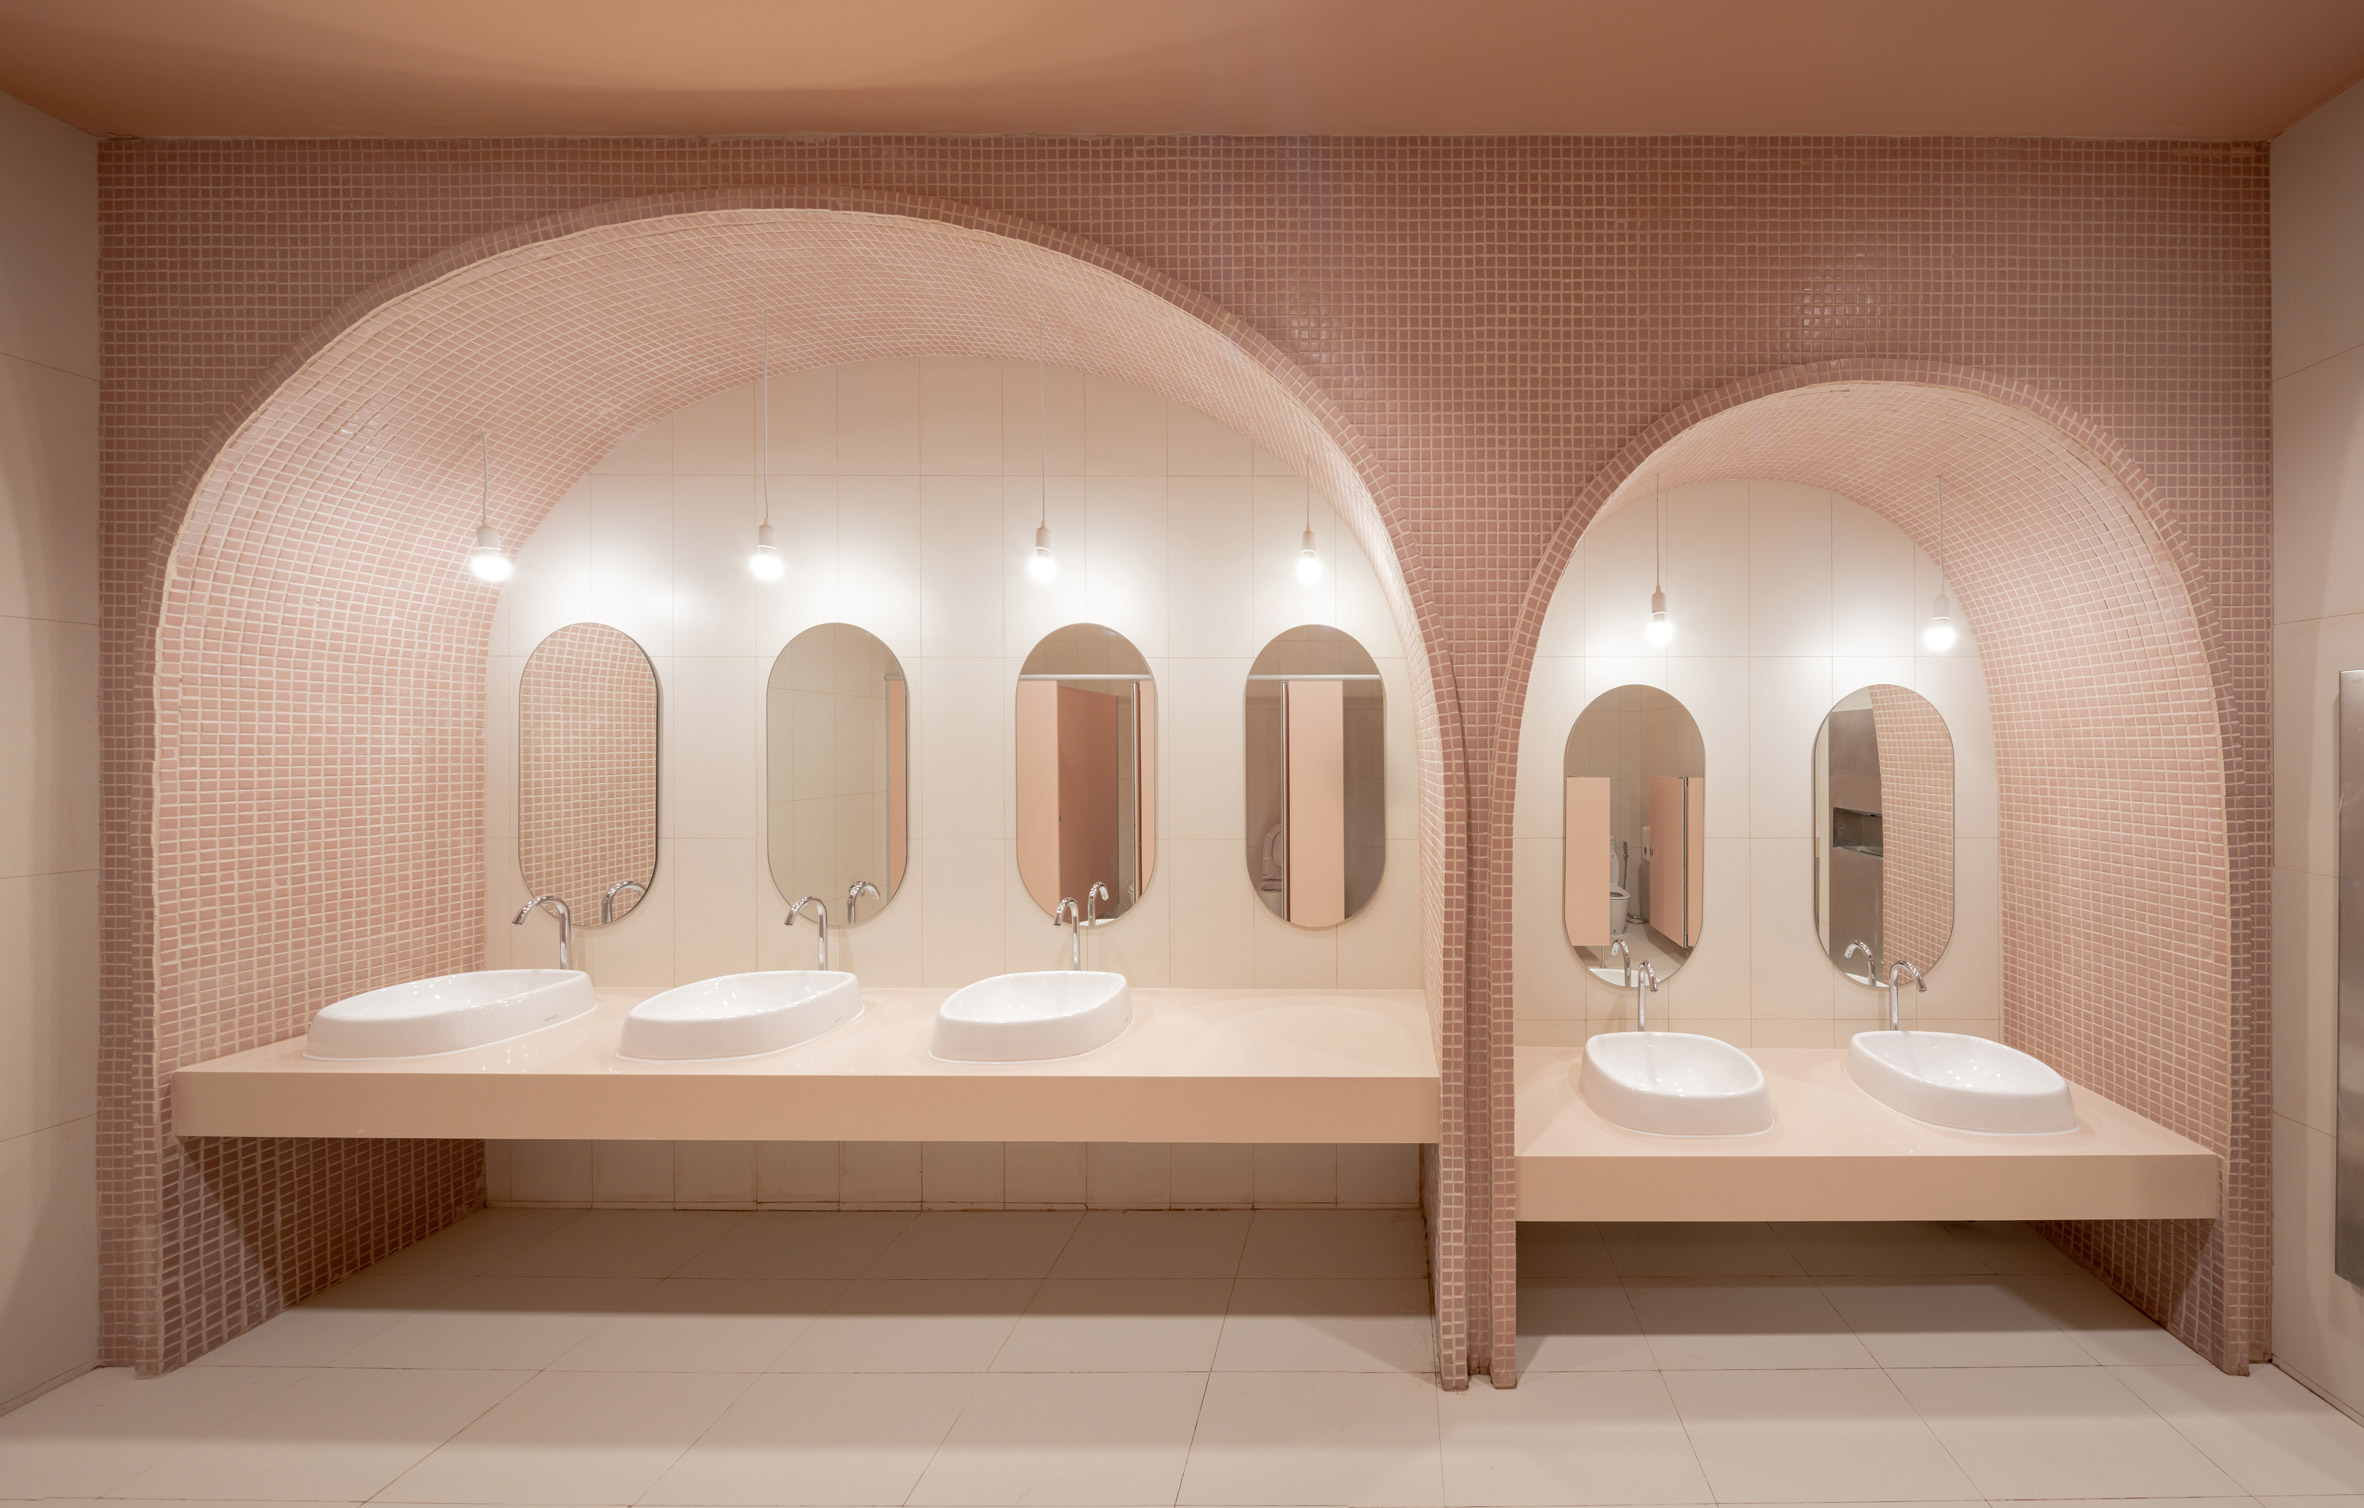 Arched pink tiled bathroom in children's hospital designed by Integrated Field